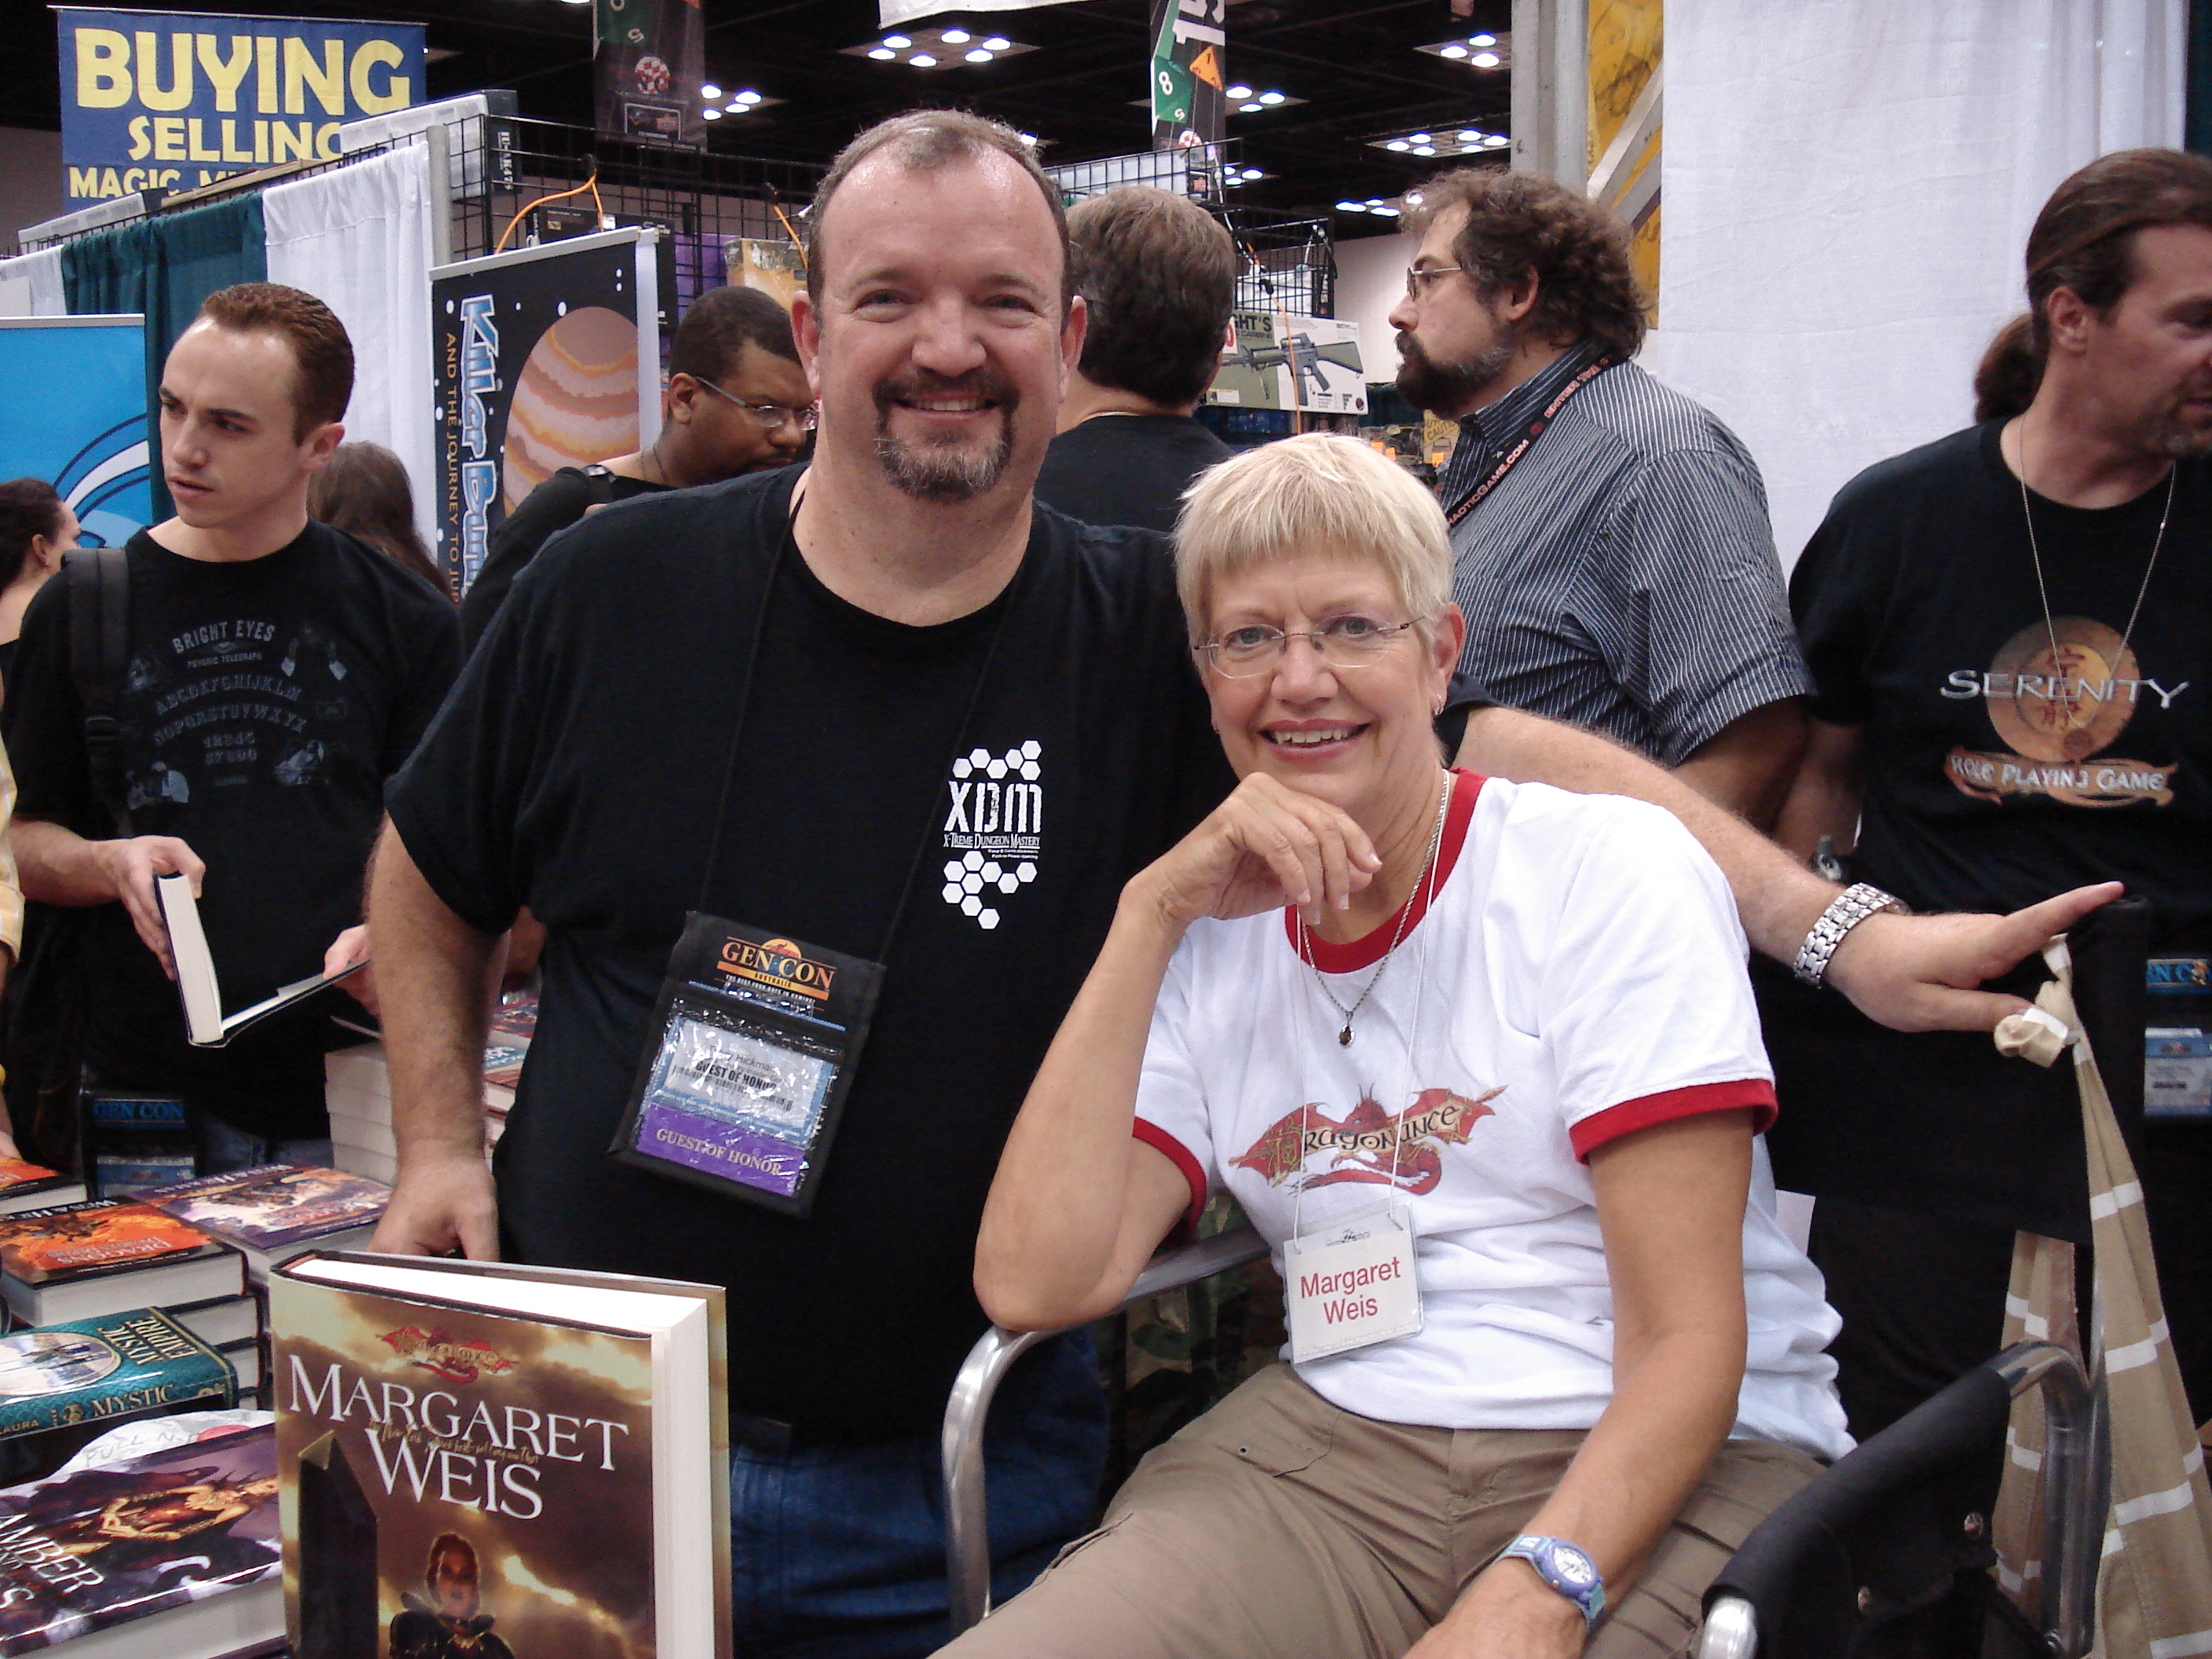 Margaret Weis (seated) with Tracy Hickman at [[Gen Con]] Indy 2008